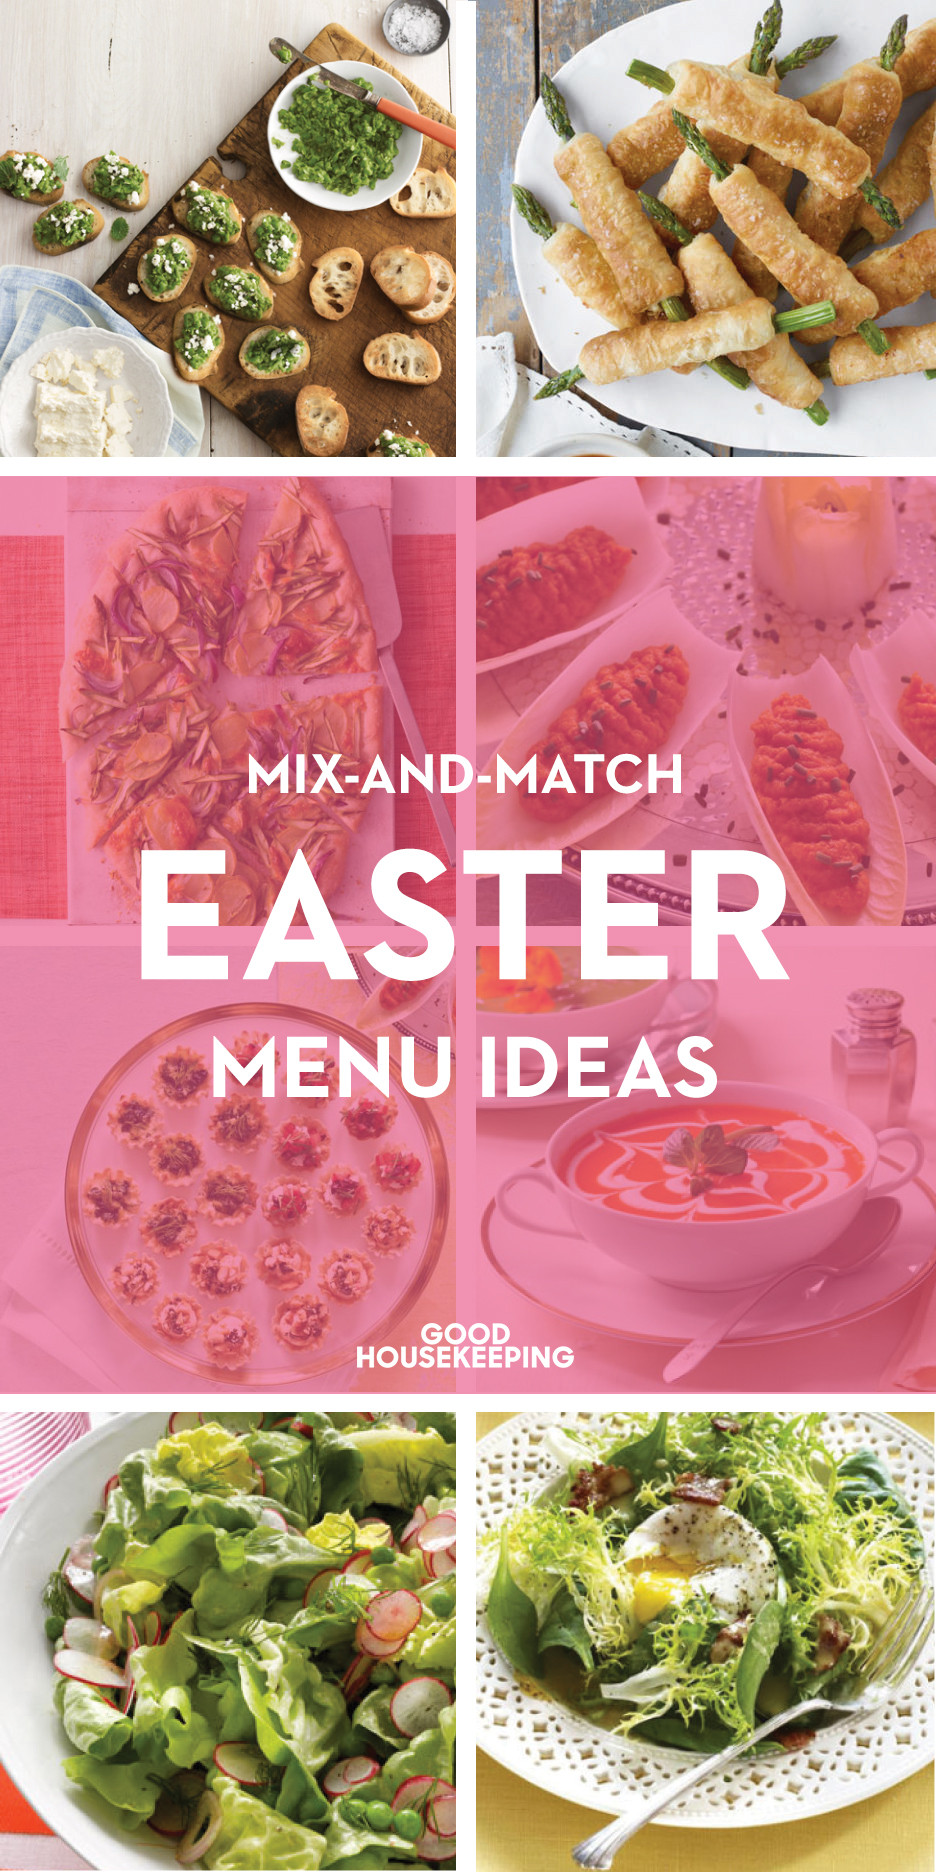 Suggestions For Easter Dinner Menu  65 Easter Dinner Menu Ideas Easy Recipes for Easter Dinner